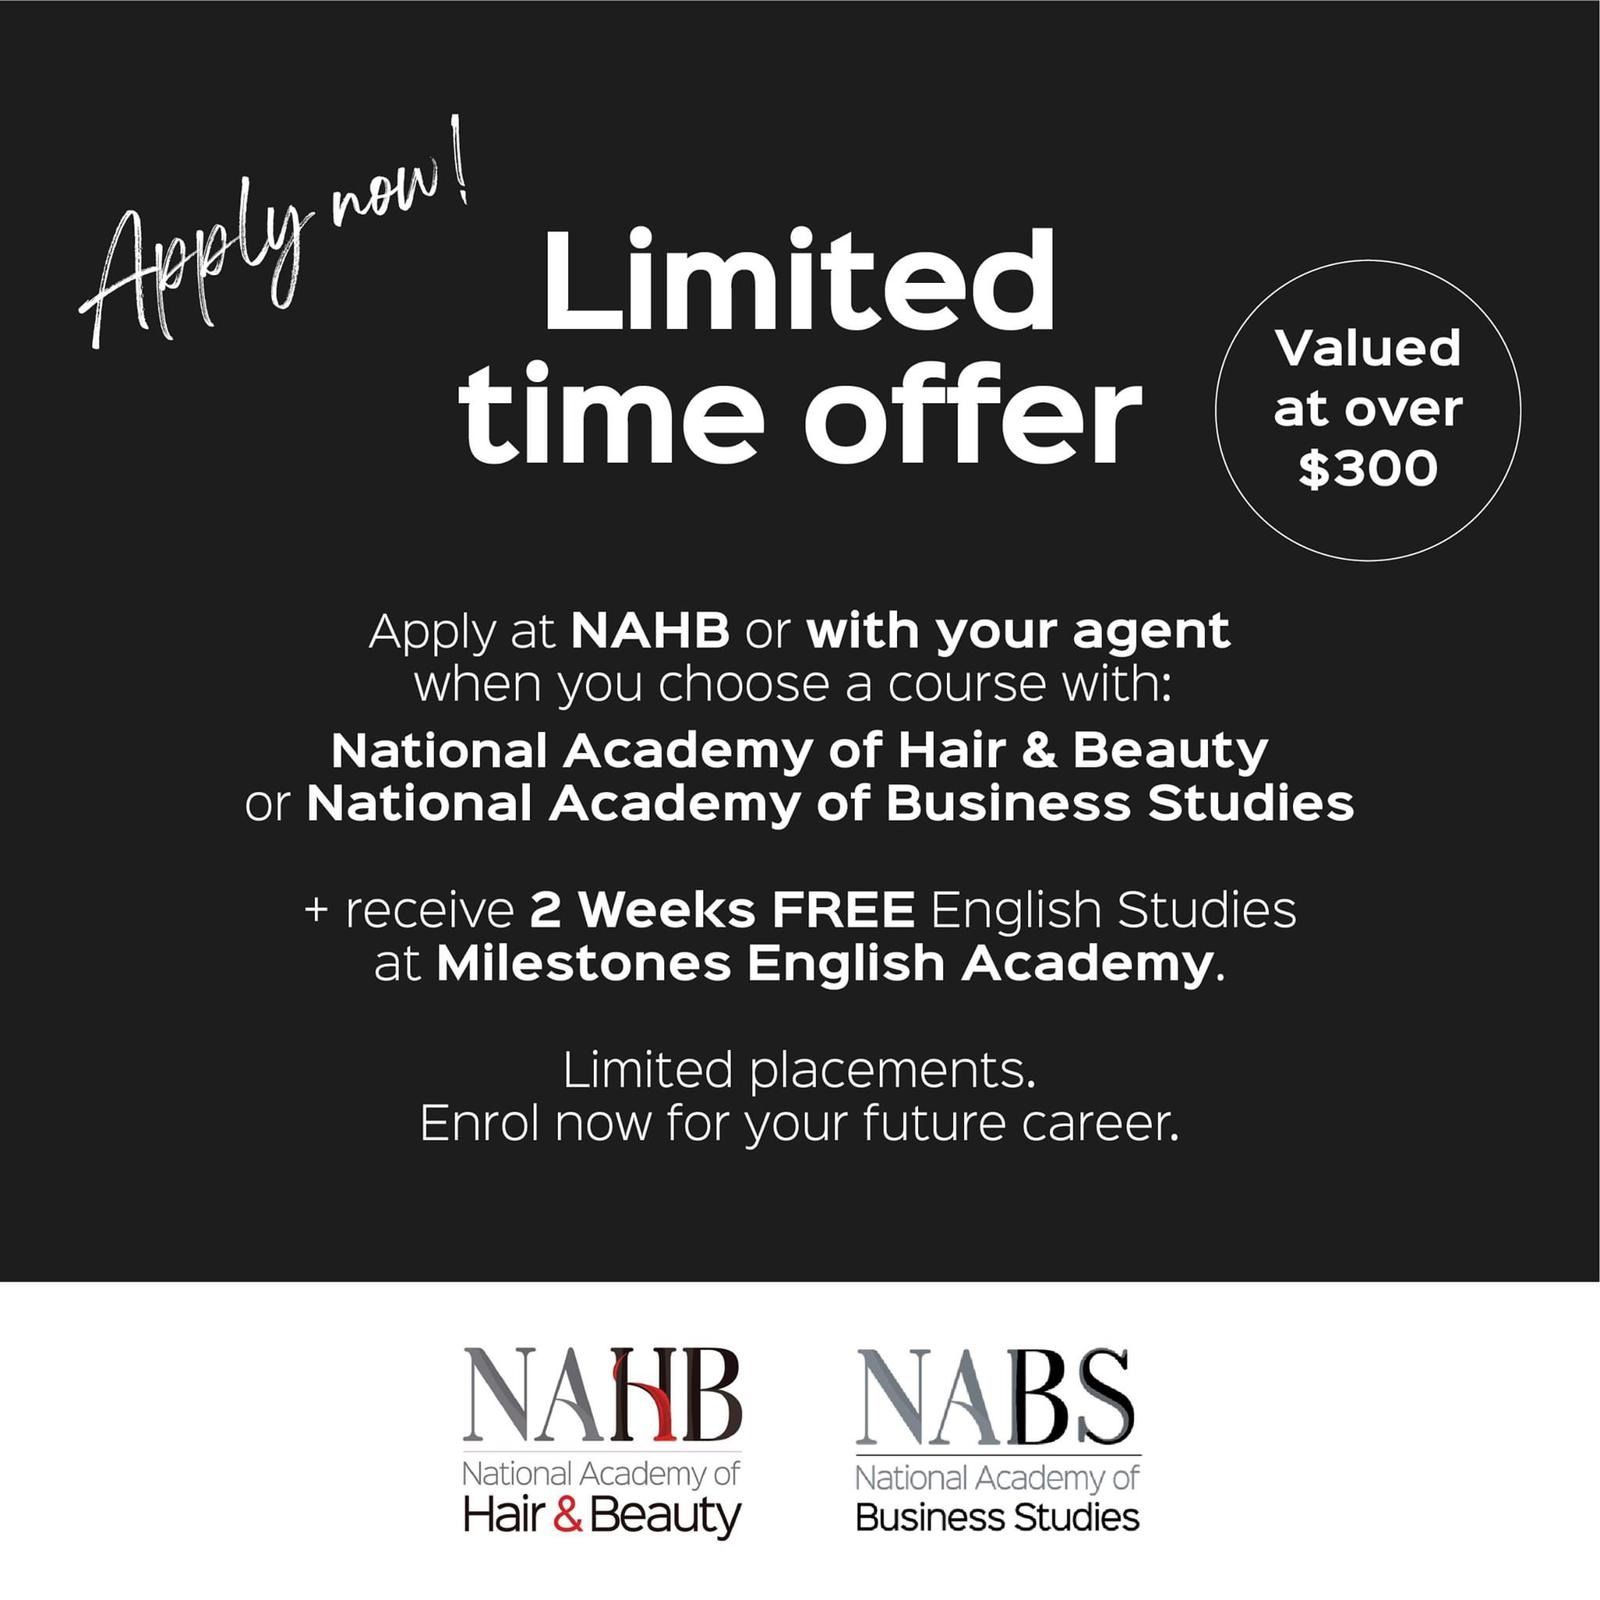 NAHB Promotion with Milestones 2 weeks Free English